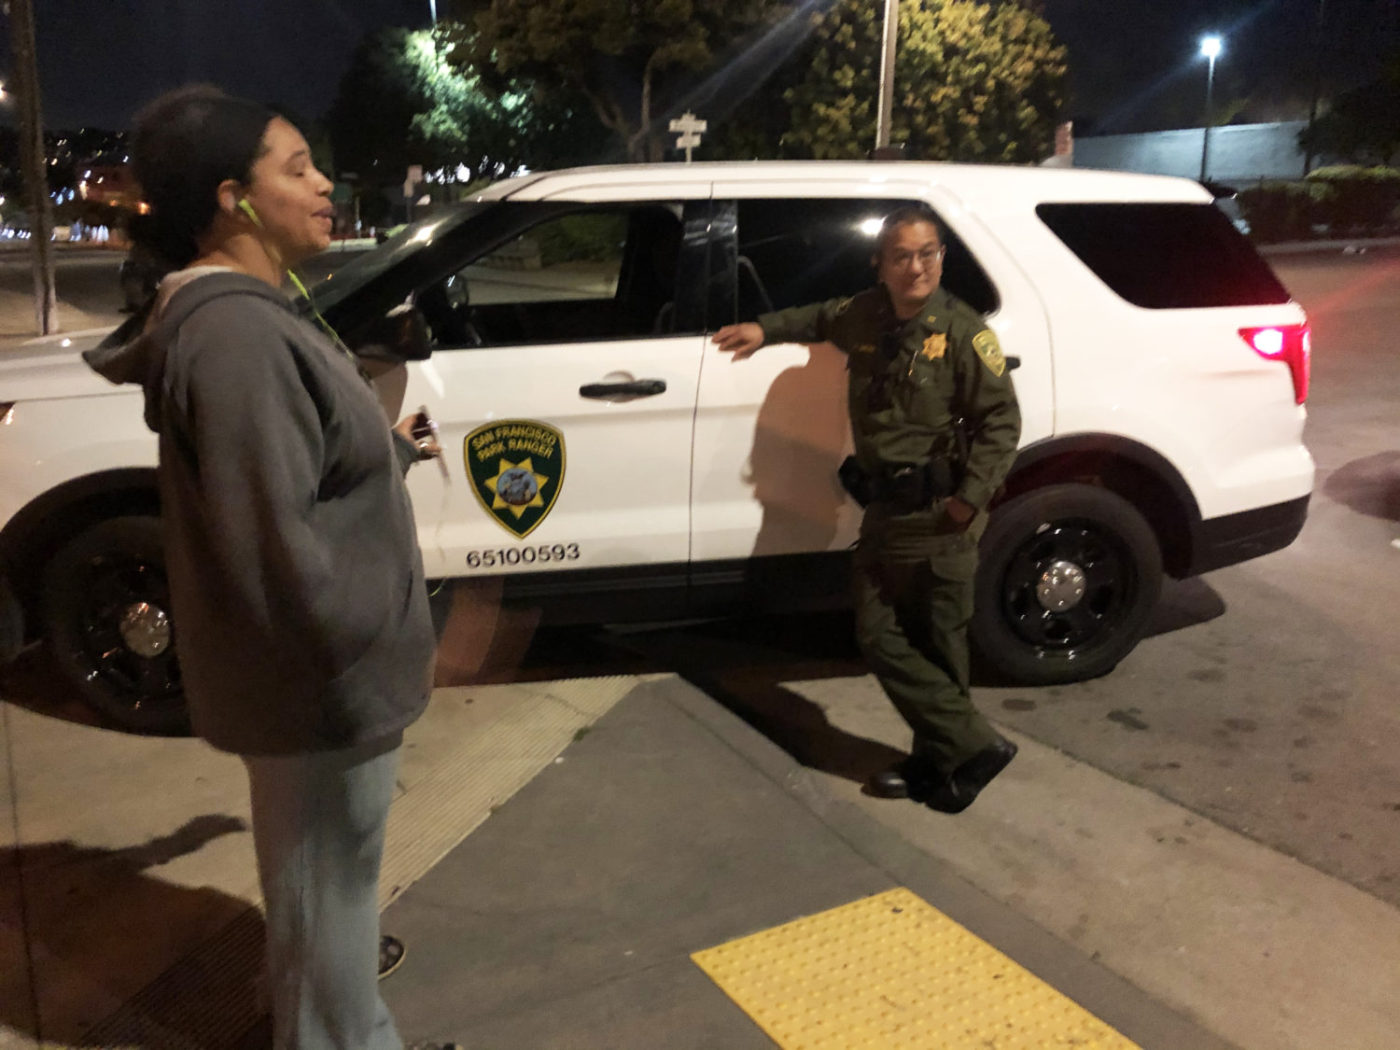 Beds-4-Bayview-Michelle-Pierce-passionately-advocates-to-Park-Rec-officer-for-tents-in-MLK-Park-night-of-040920-1400x1050, Community seizes MLK Park as immediate COVID relief for unhoused neighbors, Local News & Views